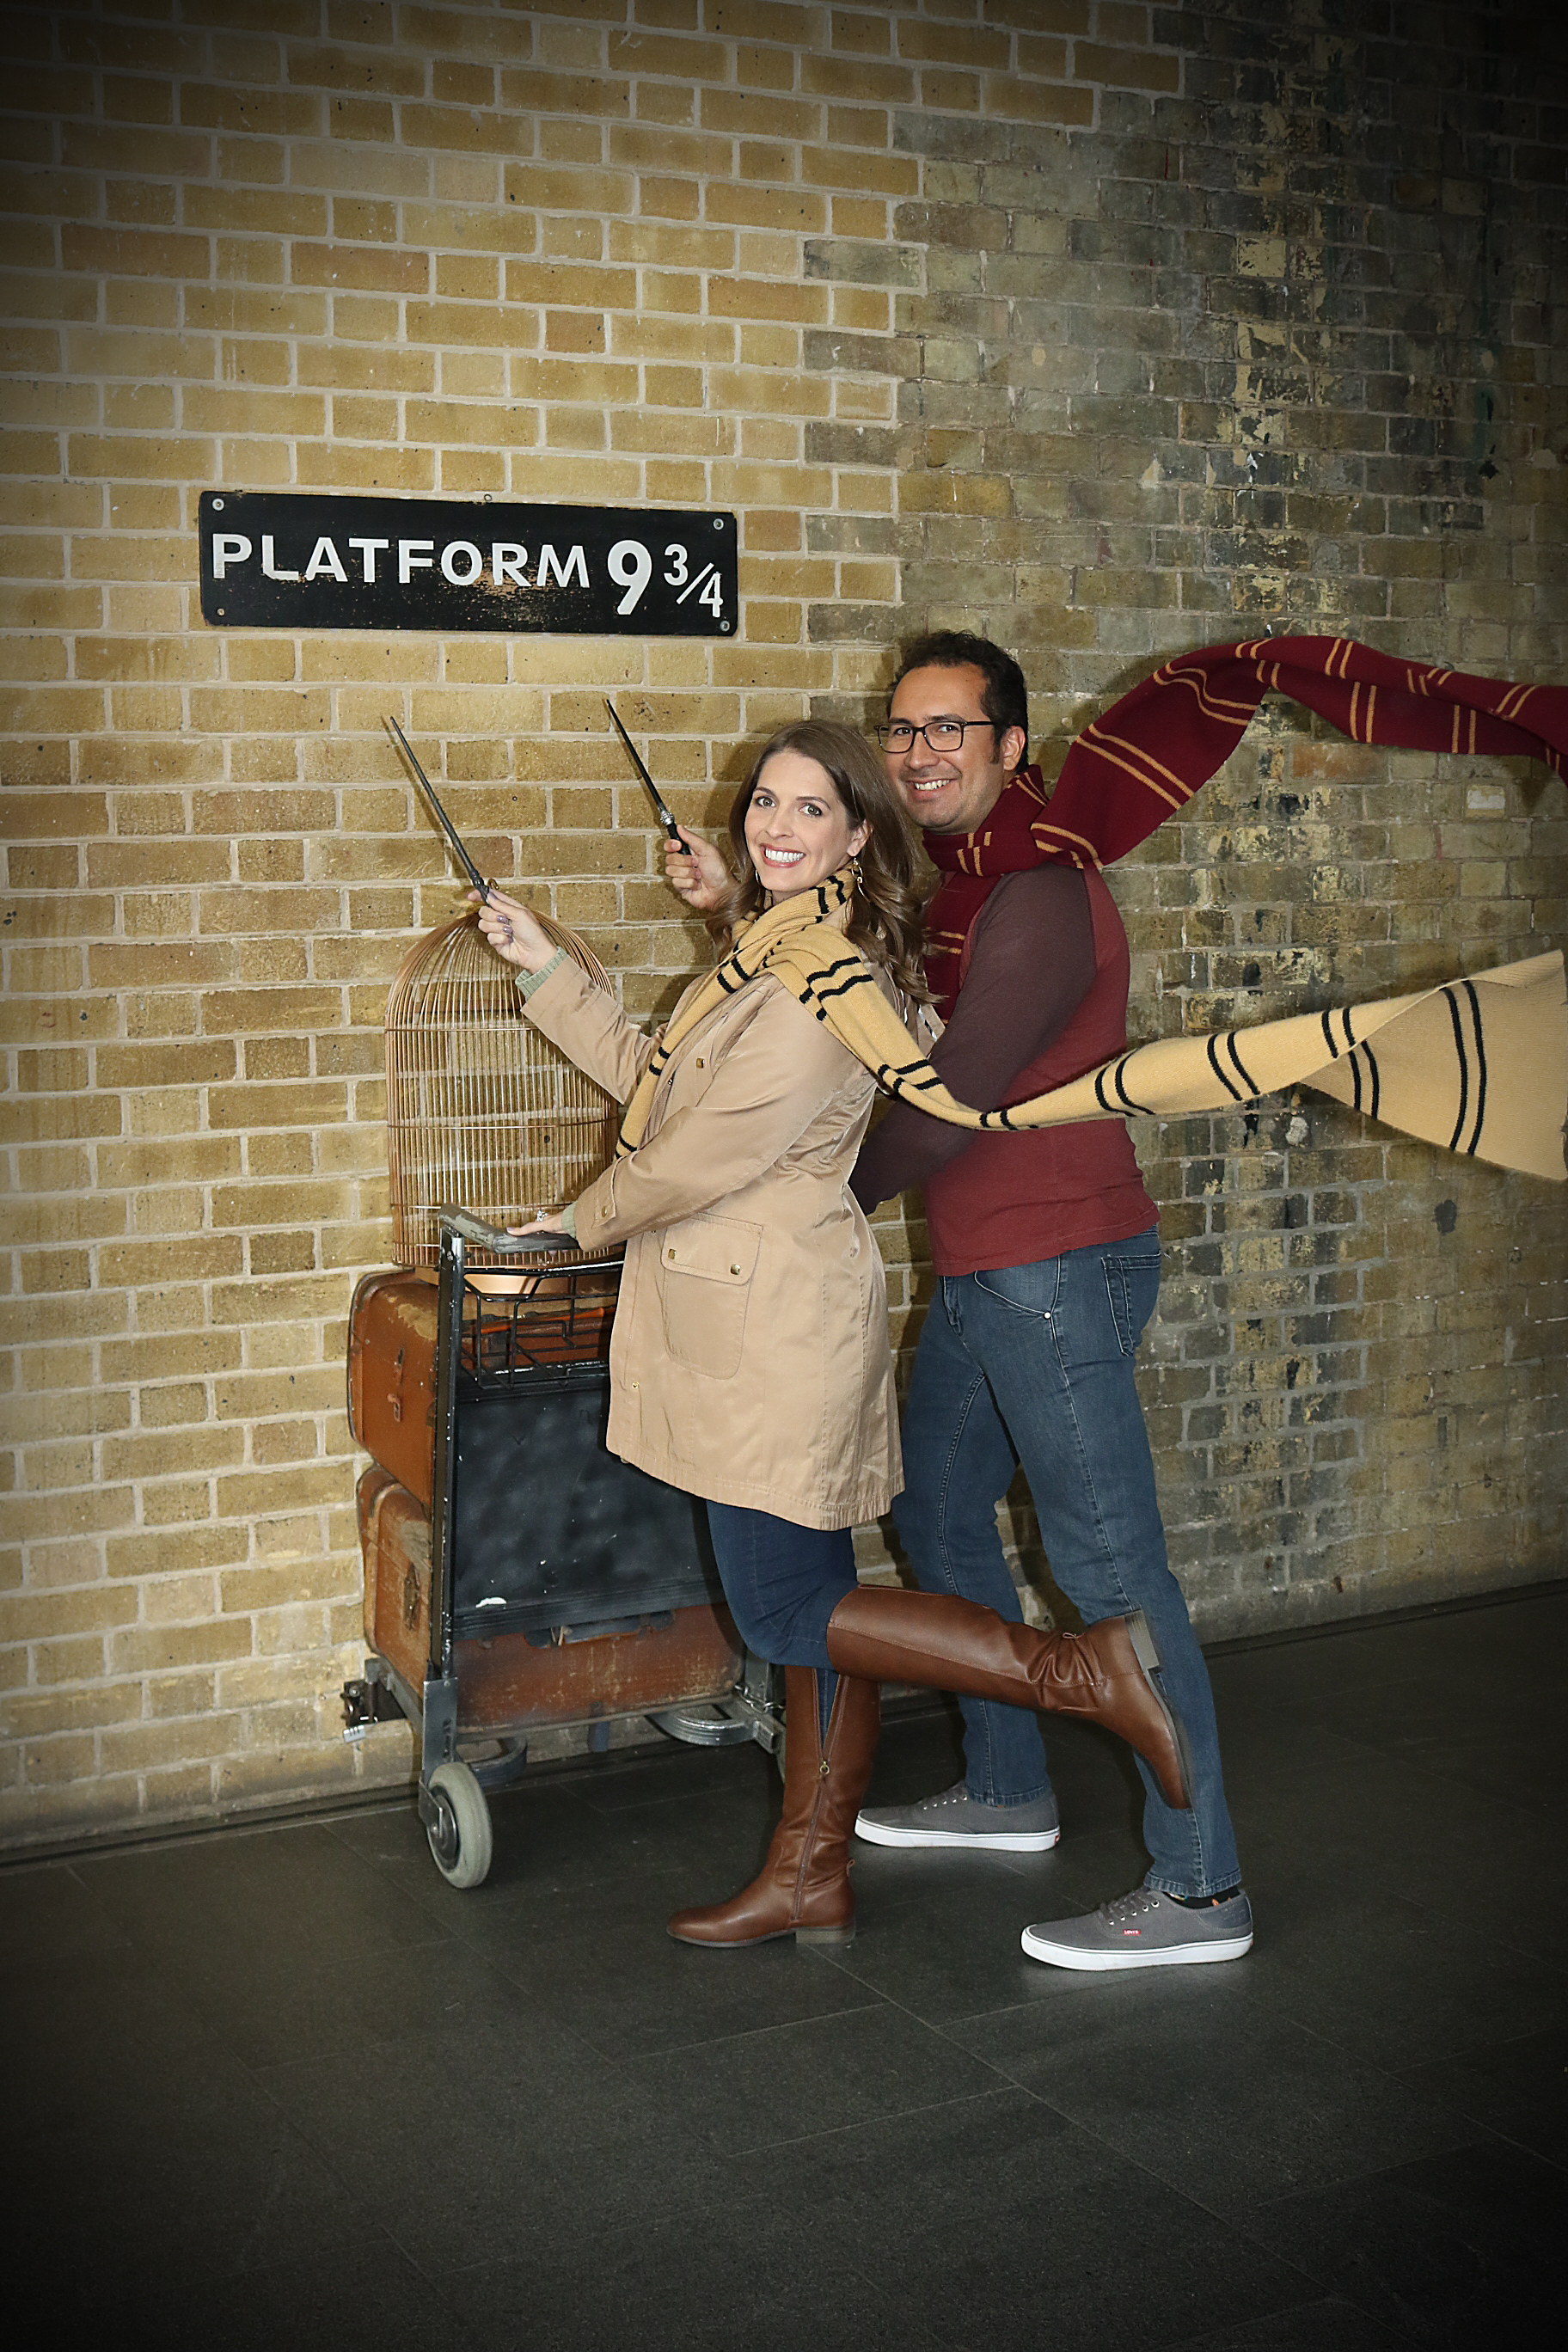 Harry Potter locations in London: Platform 9 3/4